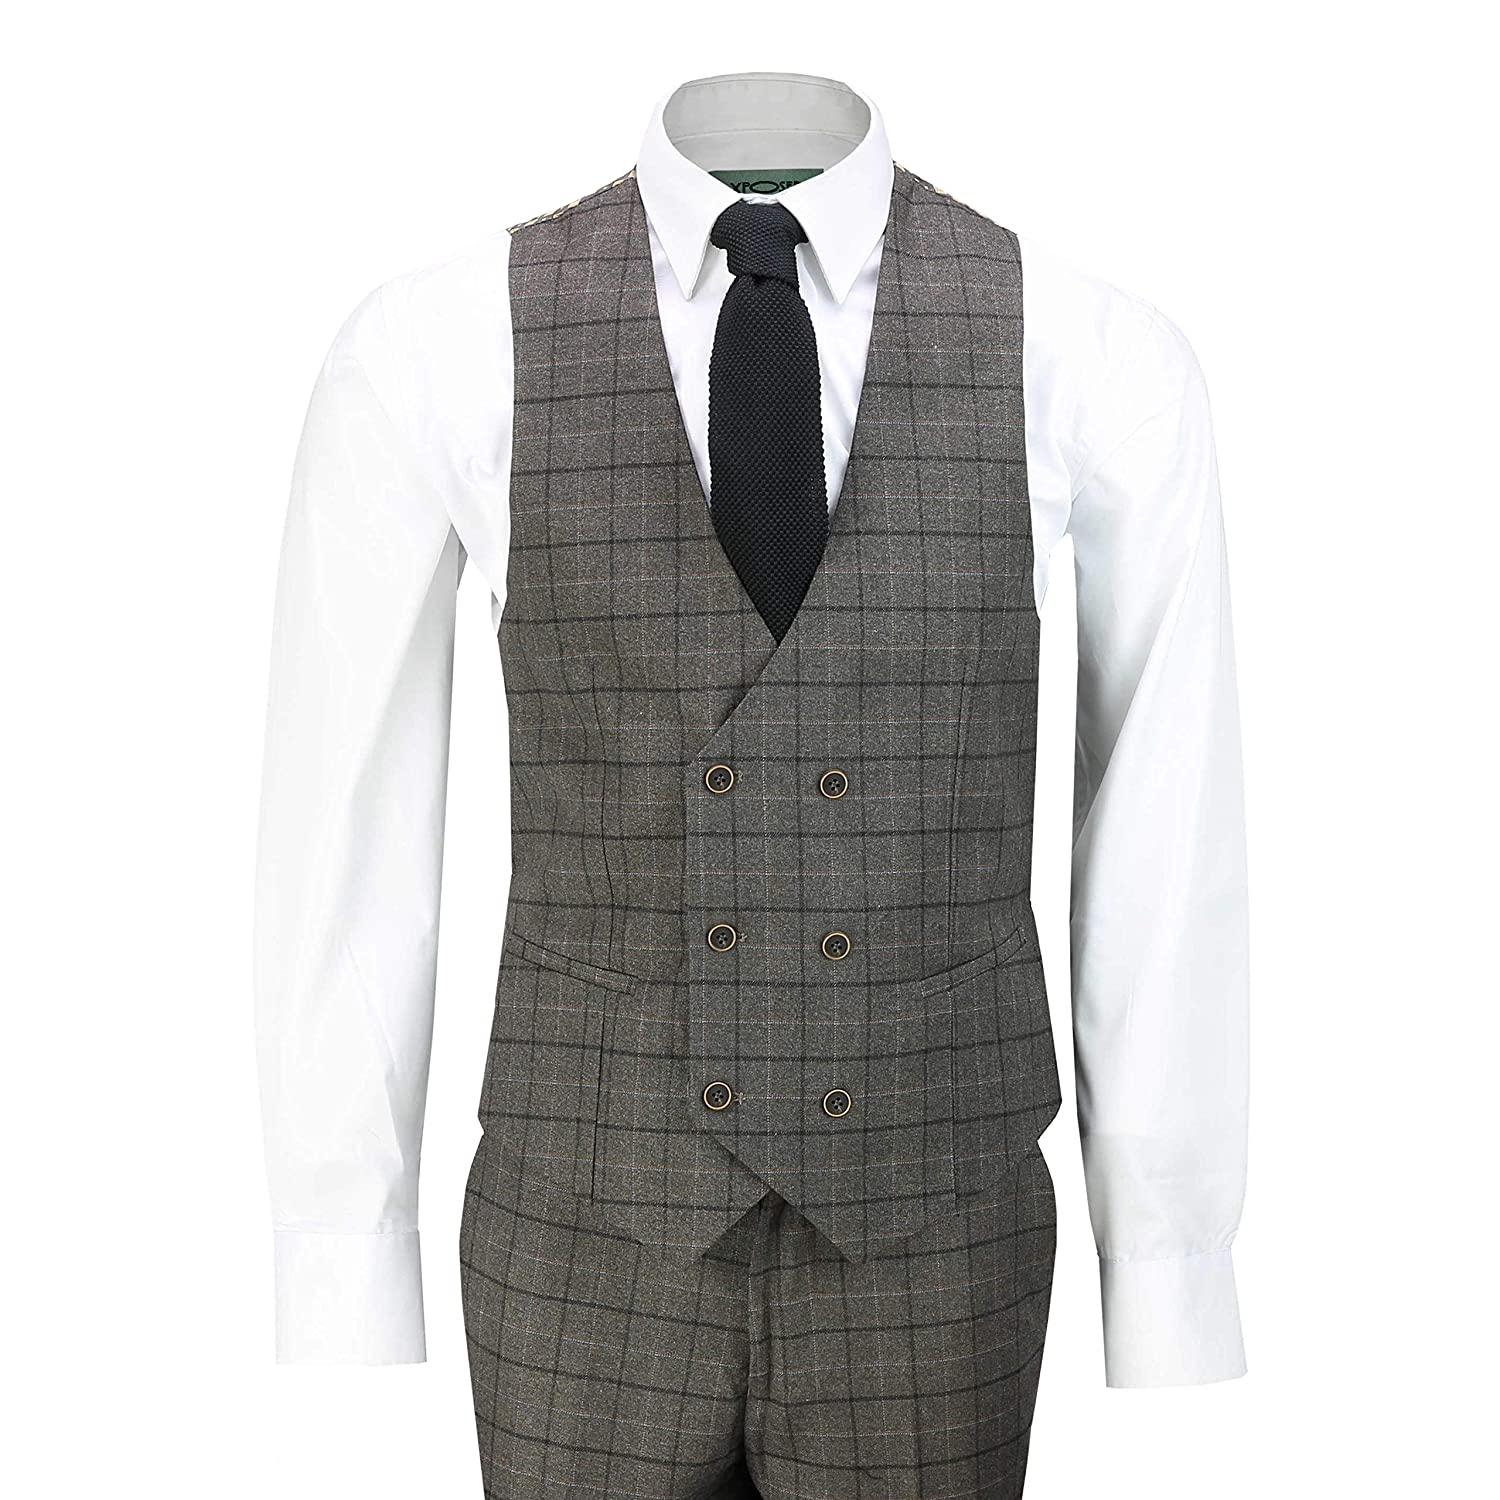 Mens 3 Piece Brown Check Suit Retro Vintage Smart Tailored Fit Classic Formal